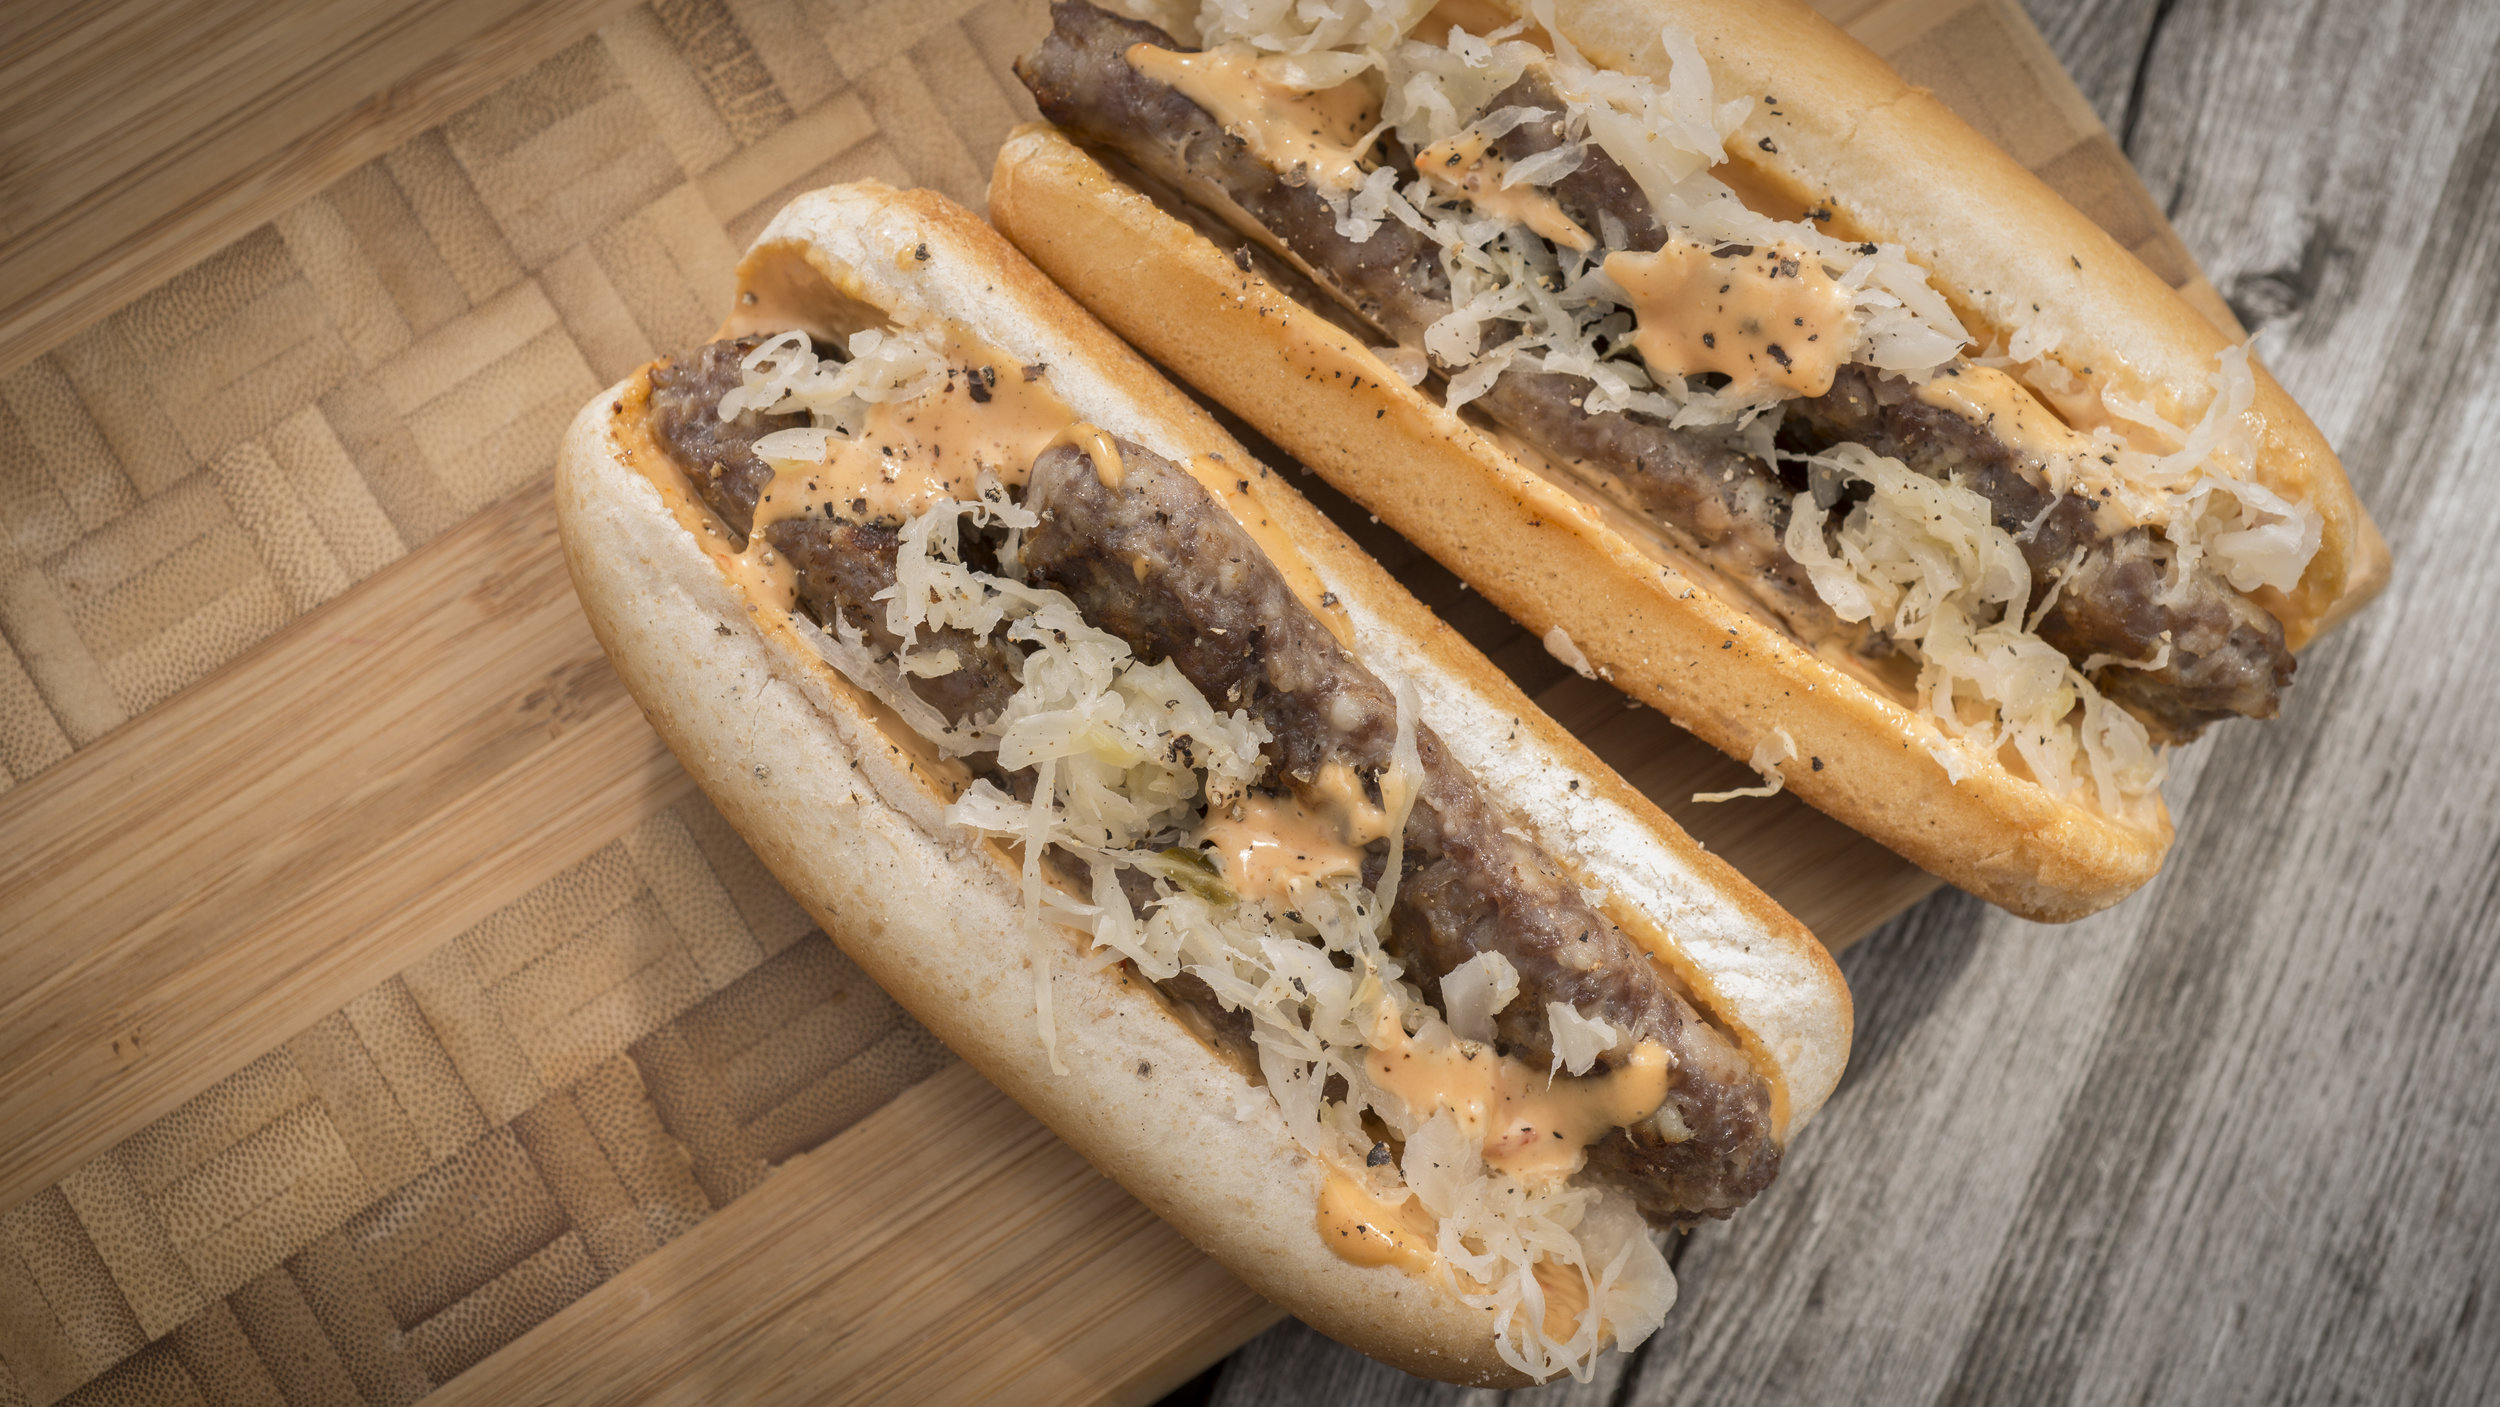 7. Reuben Brats - We love a good Reuben, but they can get a little messy -- whether it's in the lot or on the couch. Get the traditional Reuben flavor in a portable, tailgate-friendly way by adding Swiss cheese, sauerkraut, and Thousand Island dressing to your favorite Johnsonville brat.